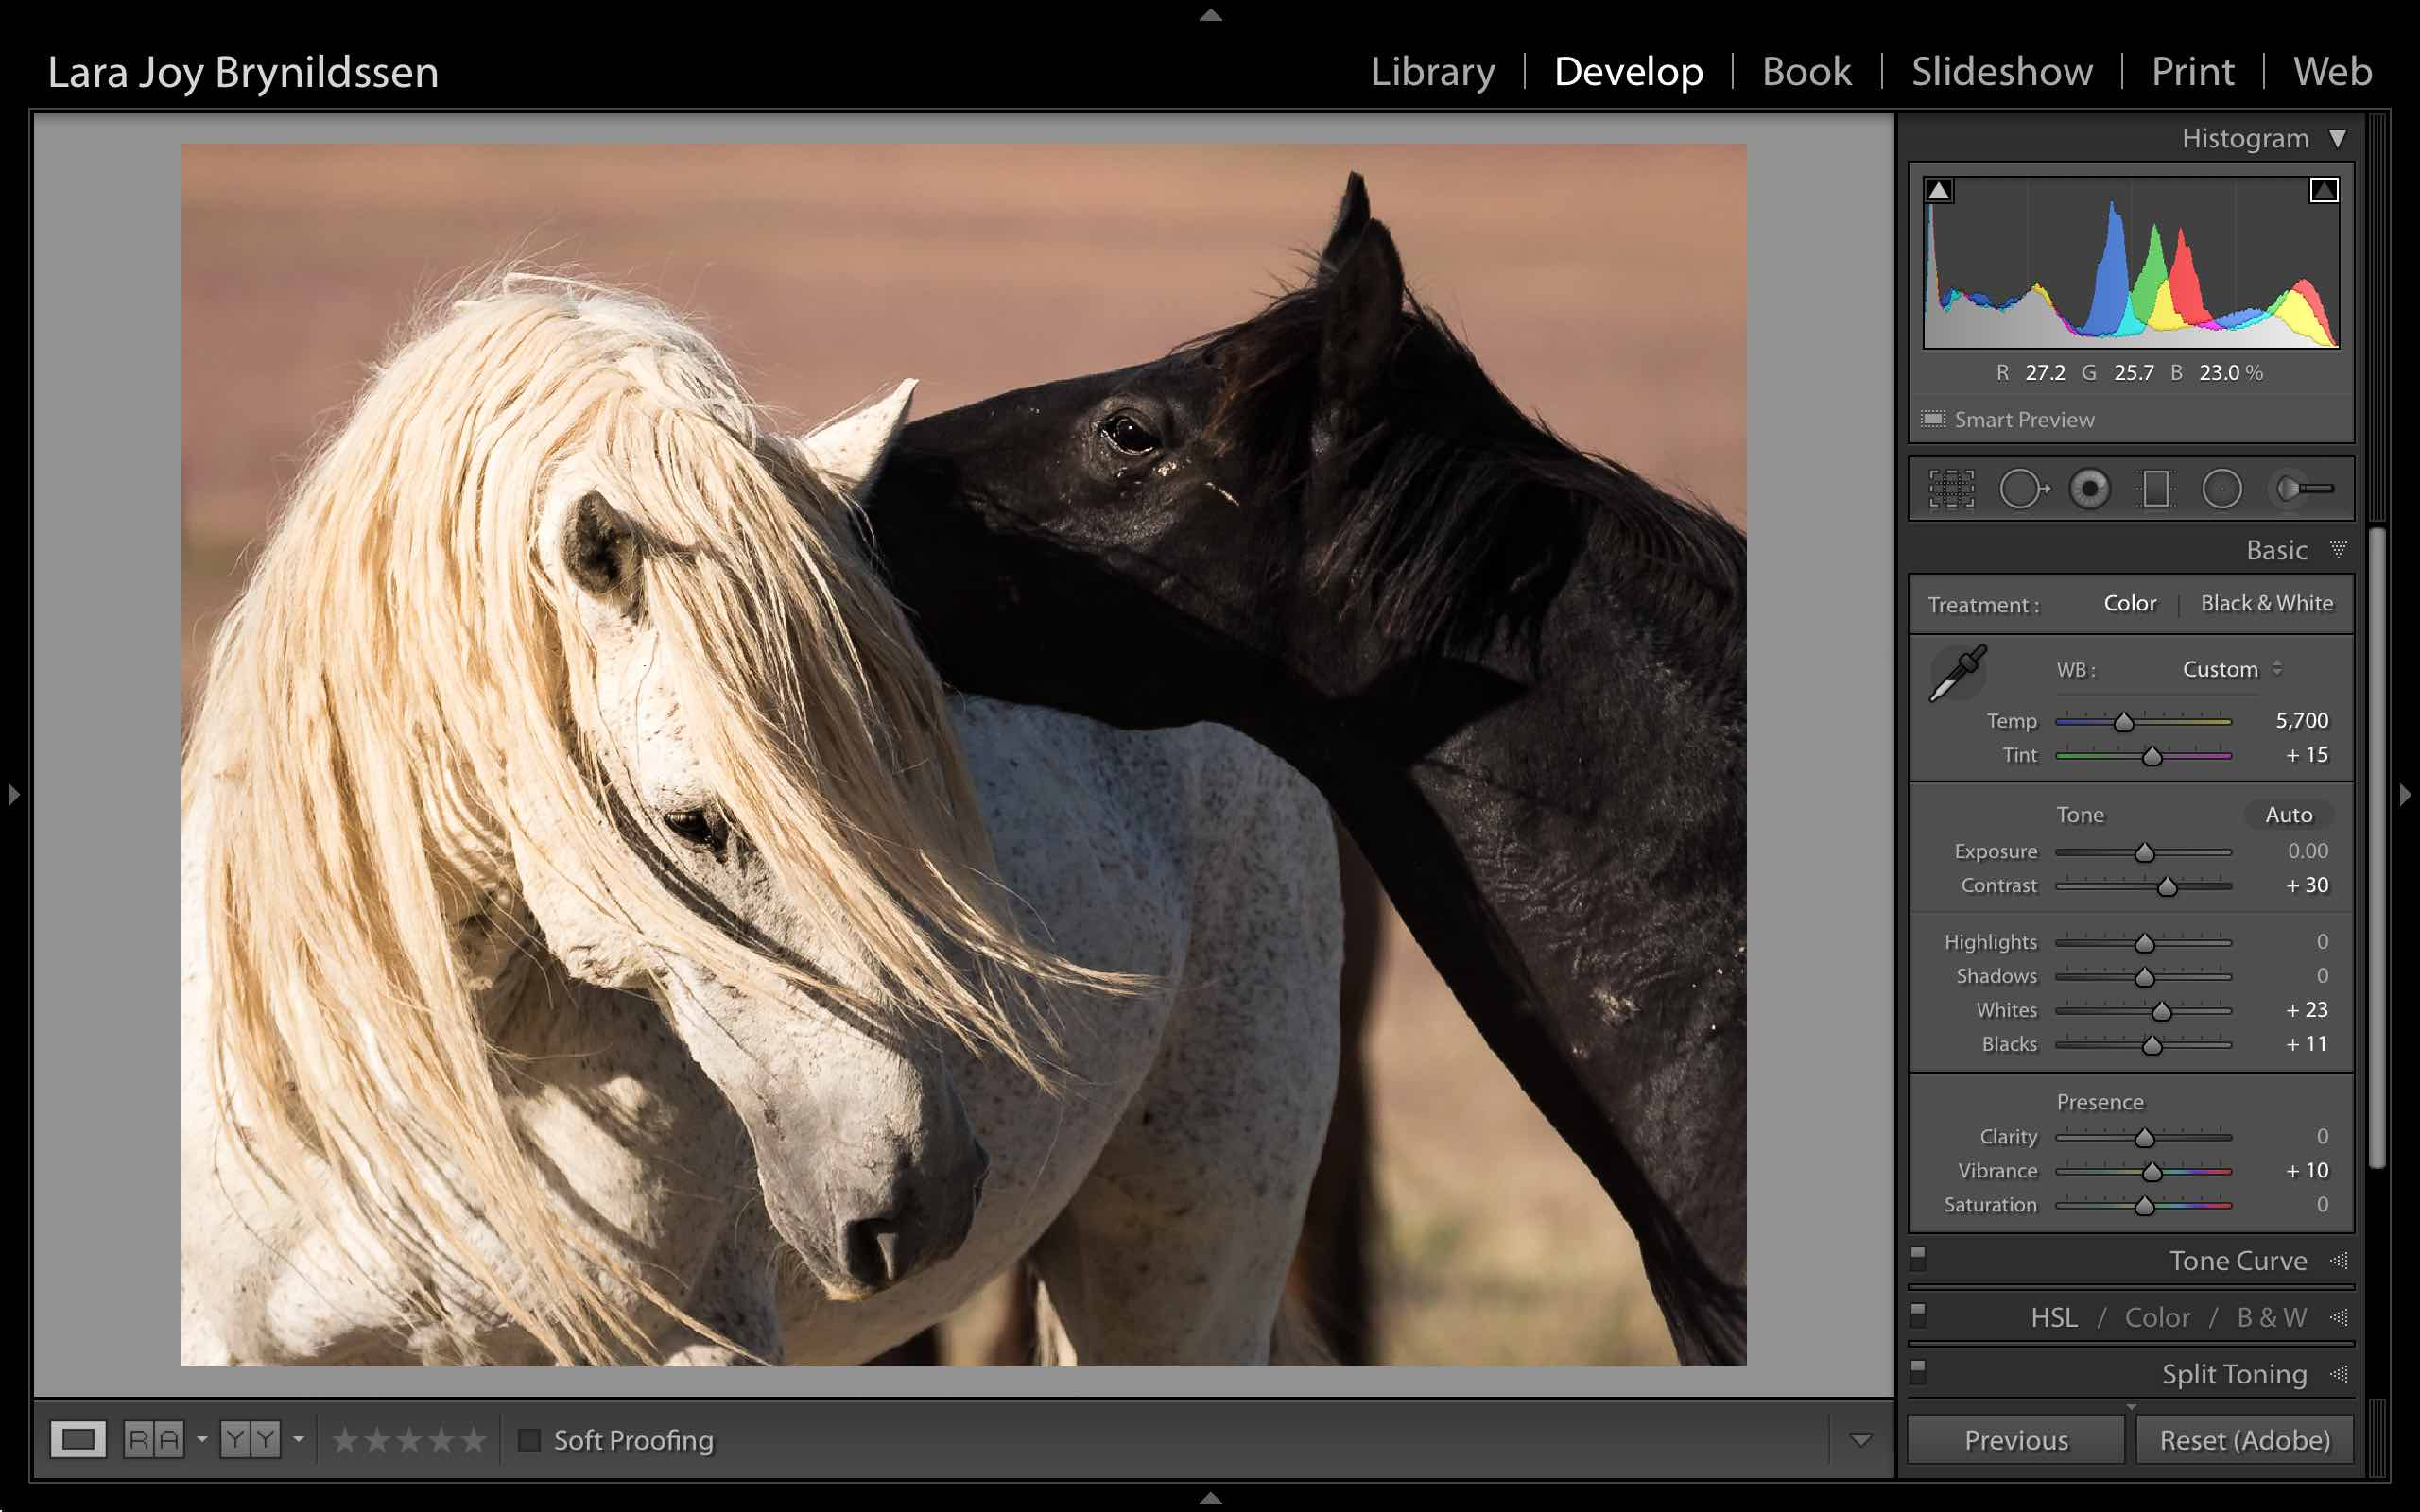 Photoshop Spot Healing Brush Tool - Lightroom adjustments